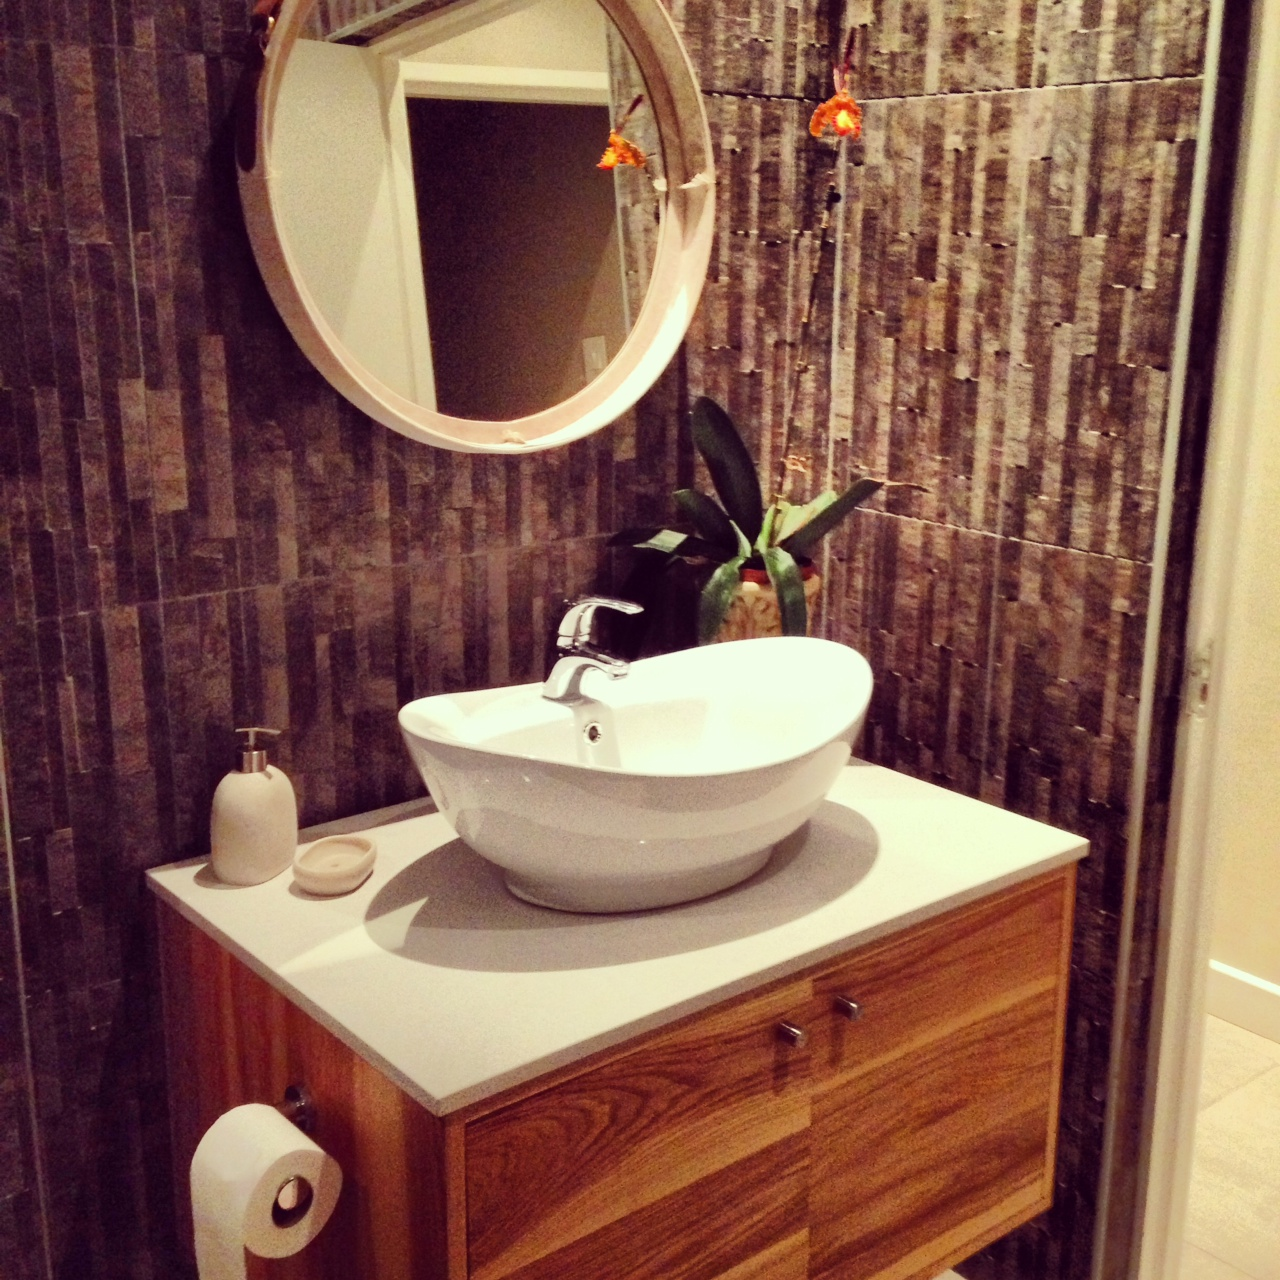 solid wood bathroom vanity - Bathroom Cabinets Kzn